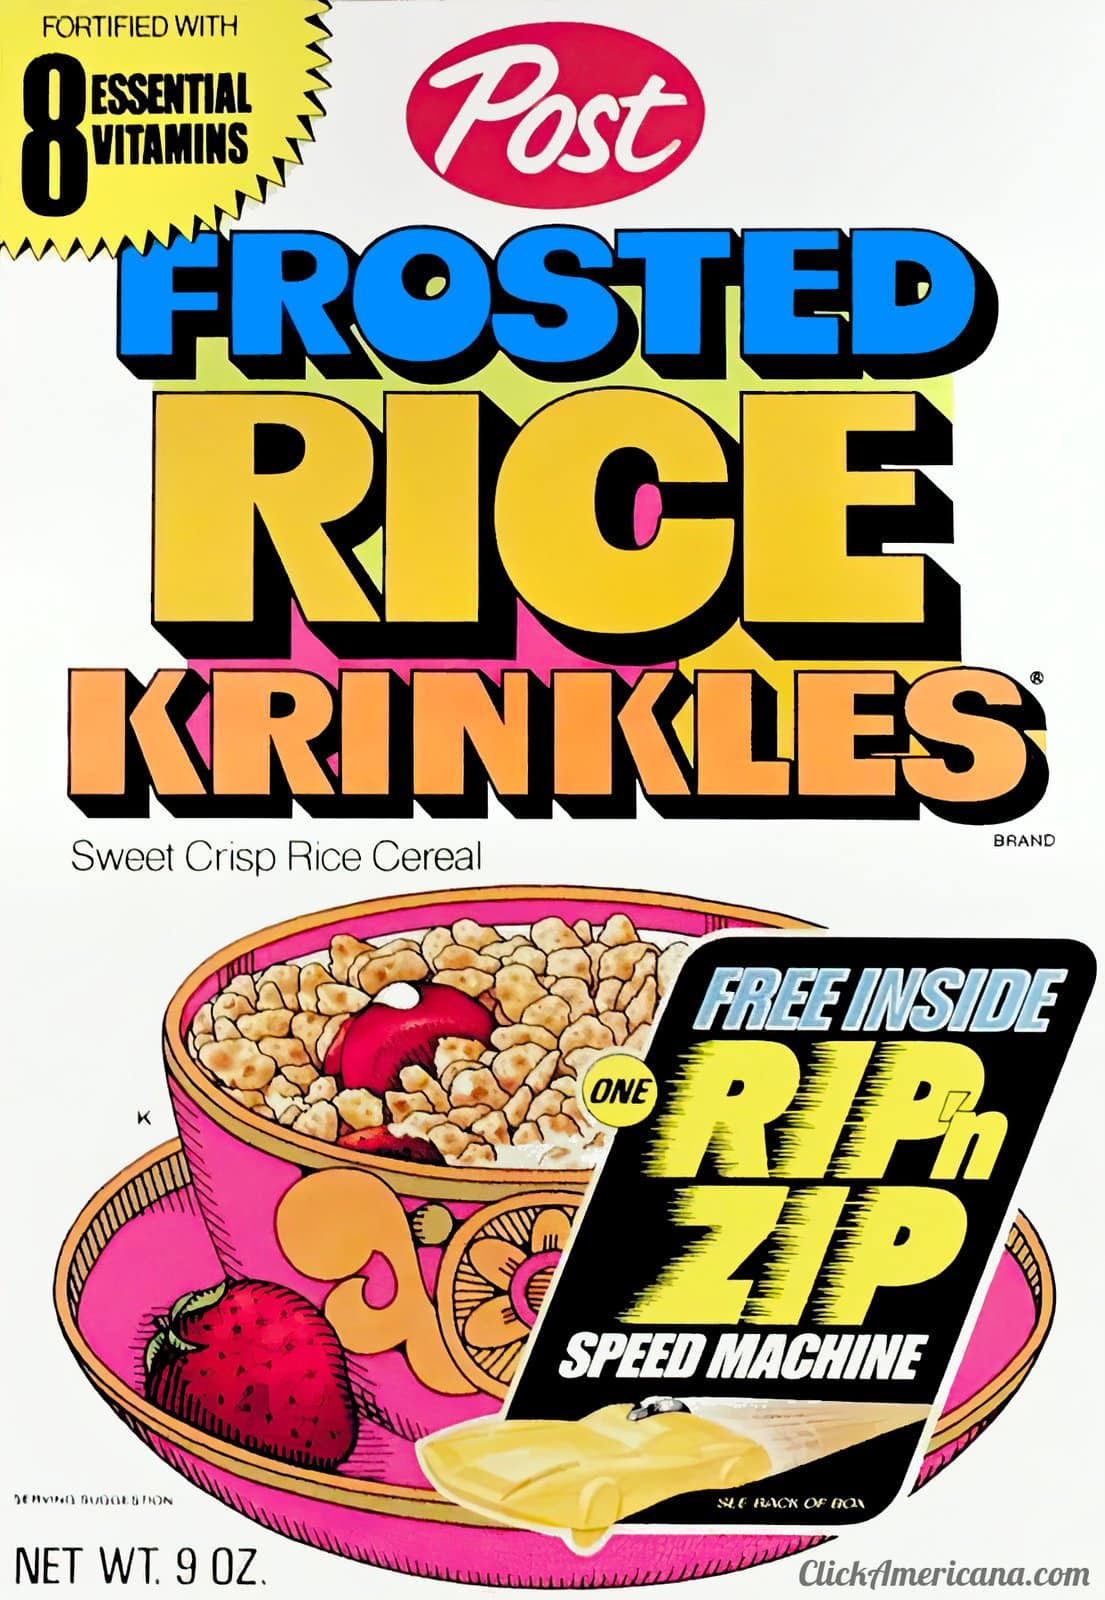 Vintage Post Frosted Rice Krinkles cereal (1970s)